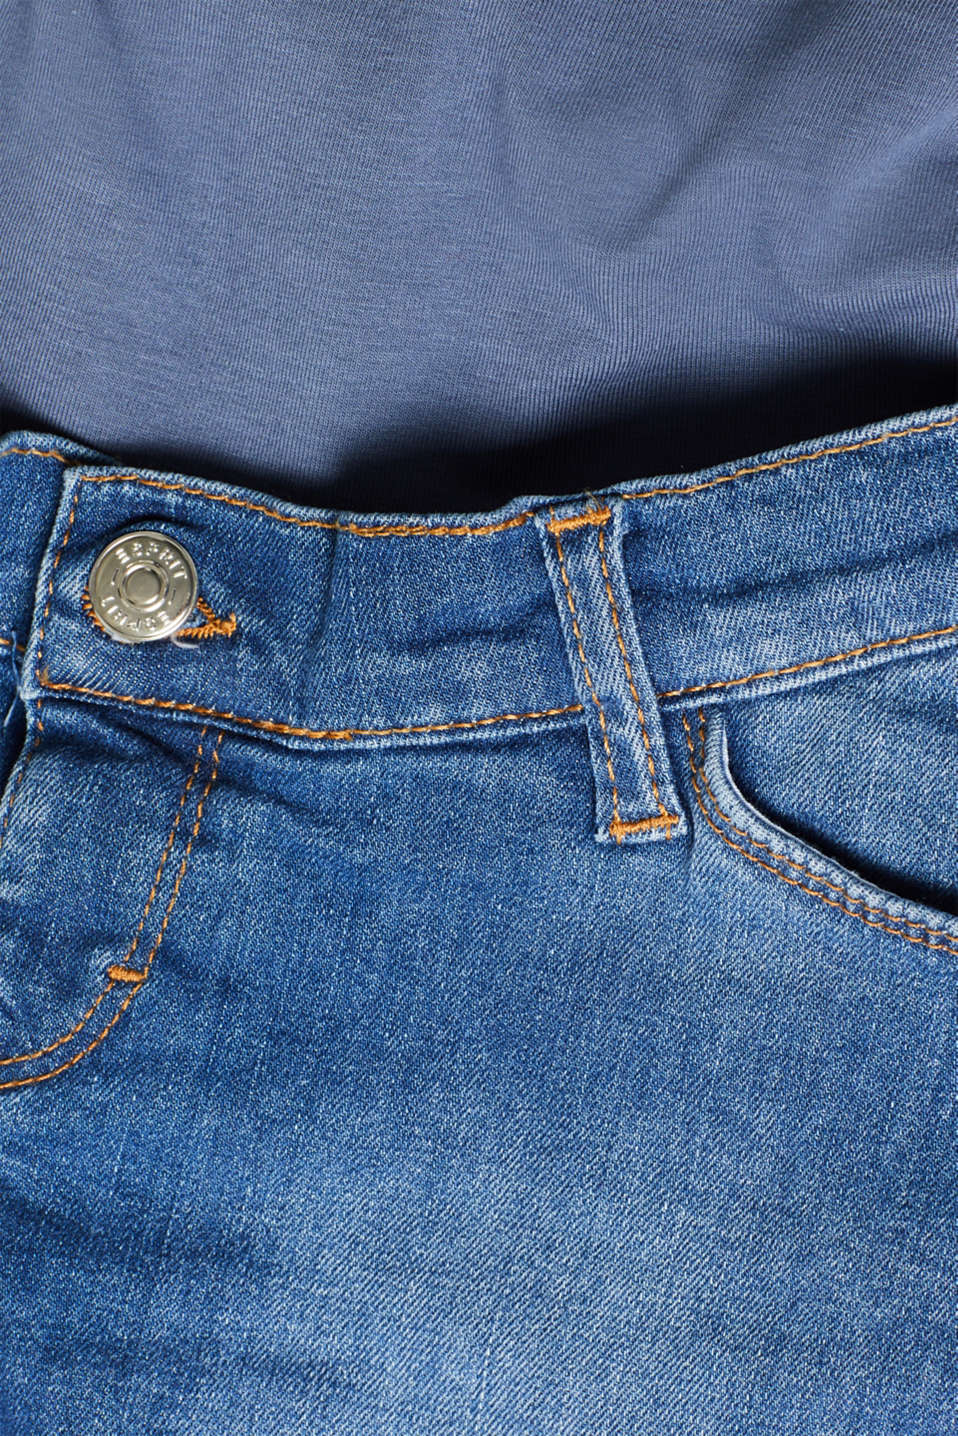 Stretch denim shorts with an over-bump waistband, LCMEDIUM WASH, detail image number 4